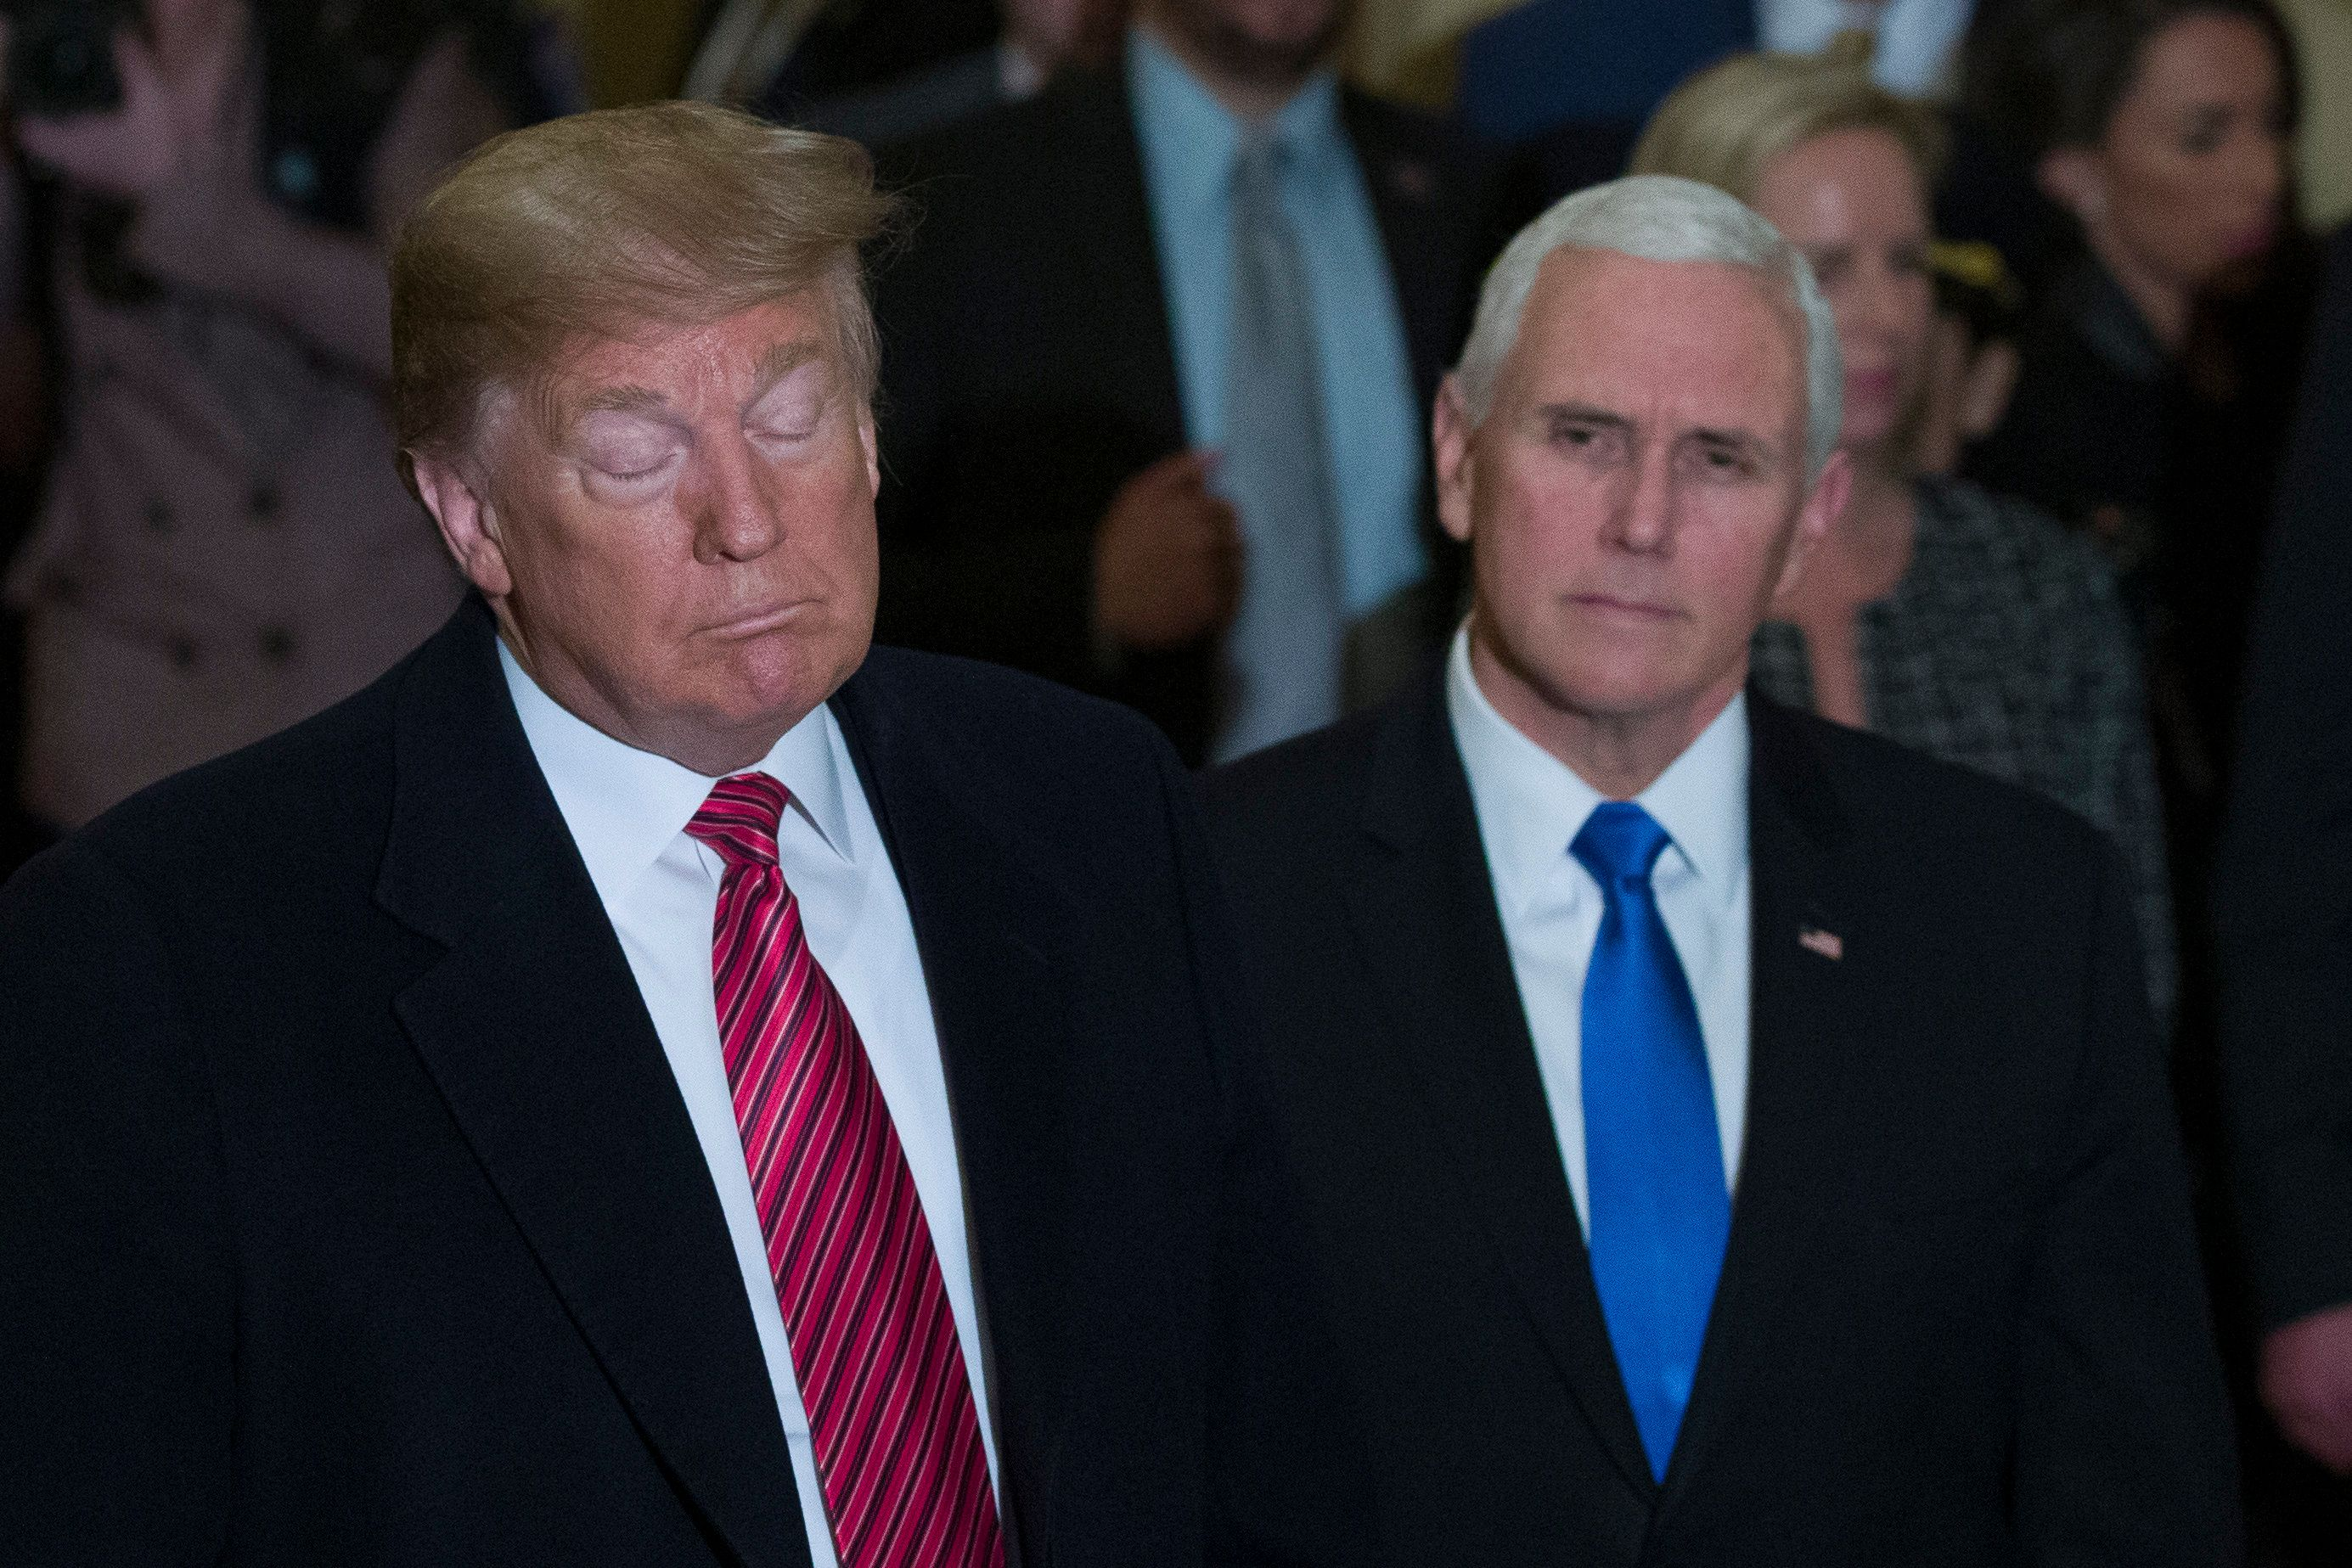 President Donald Trump, accompanied by Vice President Mike Pence, listens to a question as he arrives for a Senate Republican Policy luncheon, on Capitol Hill in Washington, Wednesday, Jan. 9, 2019. (AP Photo/Alex Brandon)